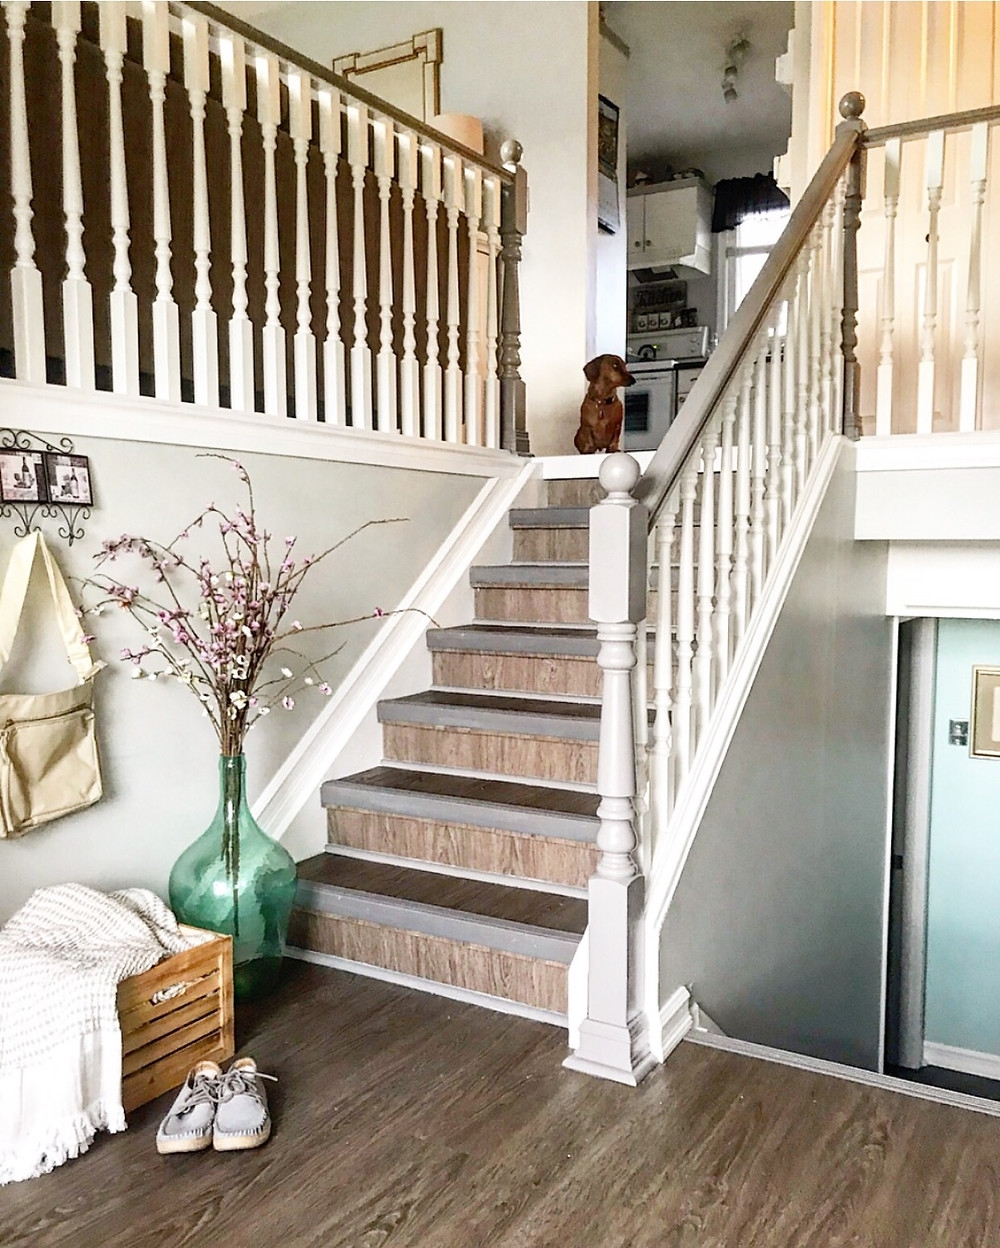 How To Paint Stair Spindles The Easy Way | Two Tone Stair Railing | White | Indoor | Antique | Mansion | Country Style